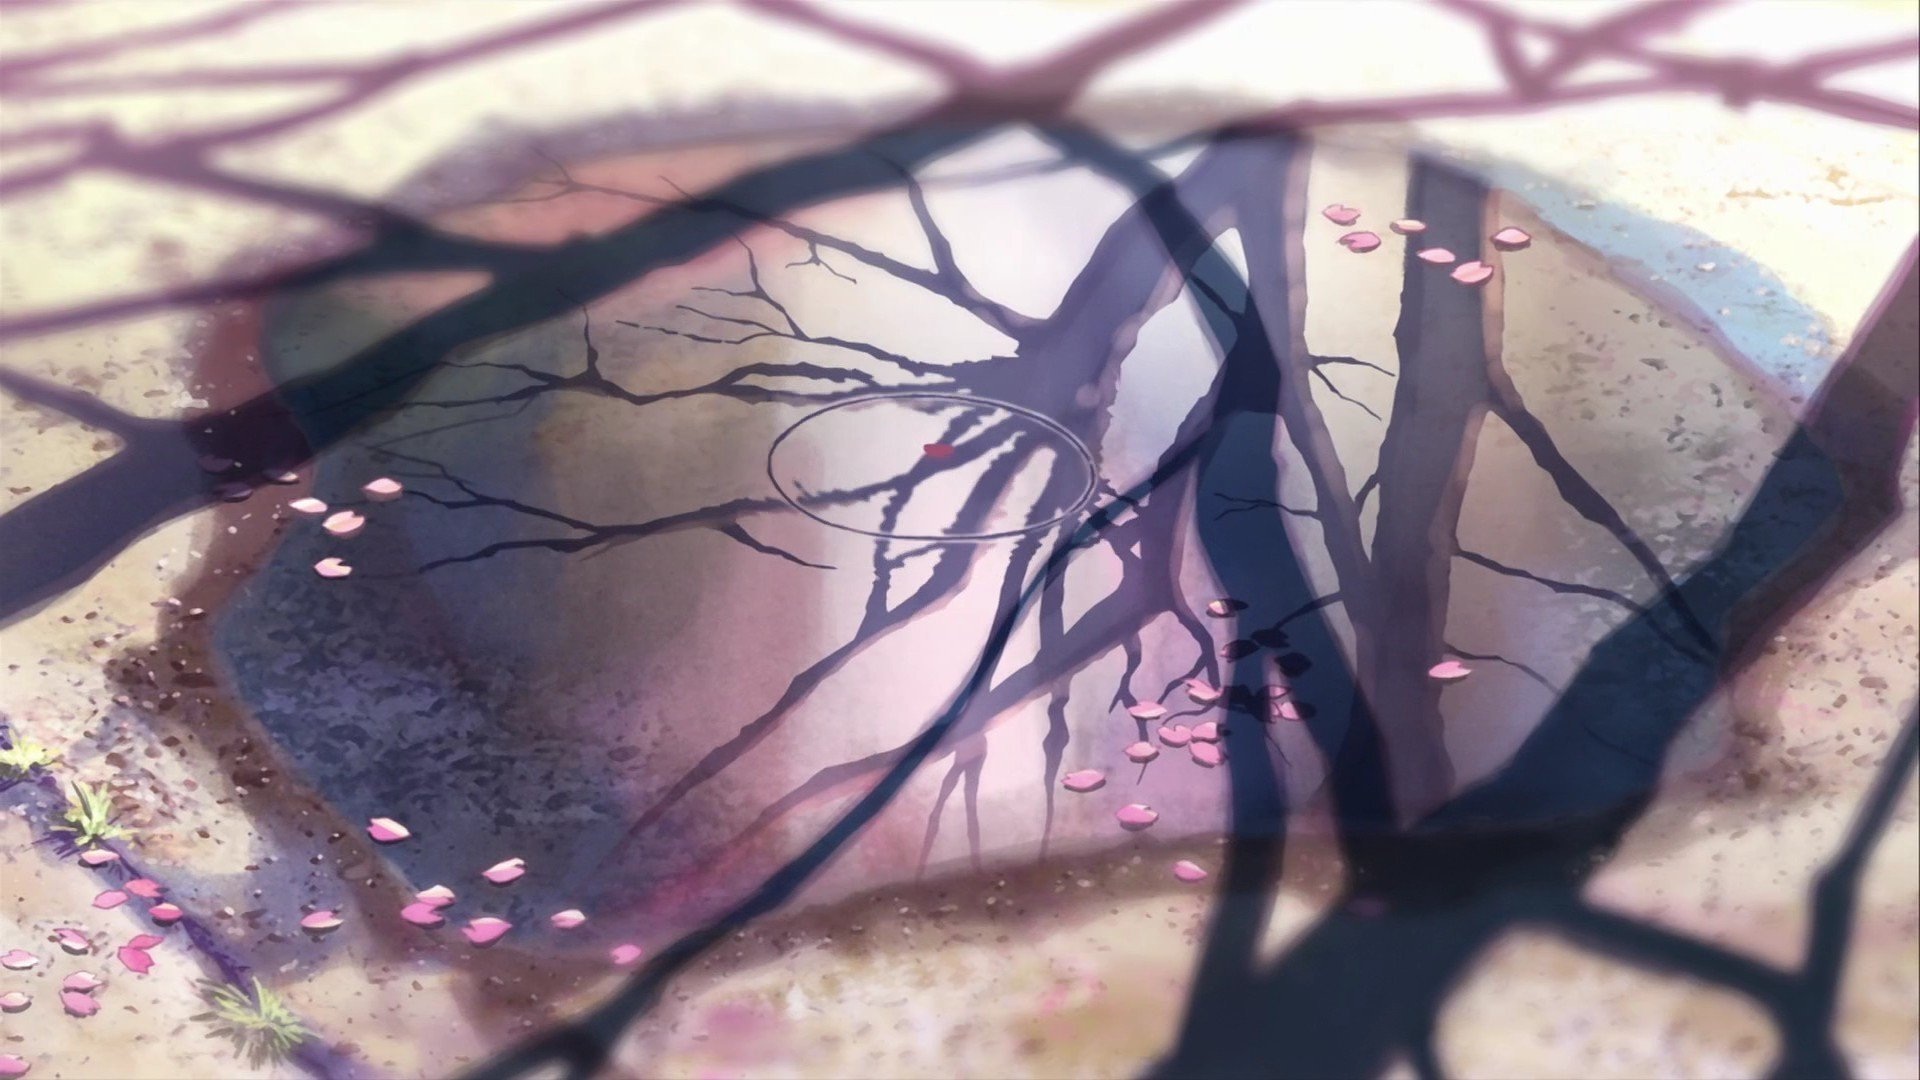 Anime - 5 Centimeters Per Second  Wallpaper